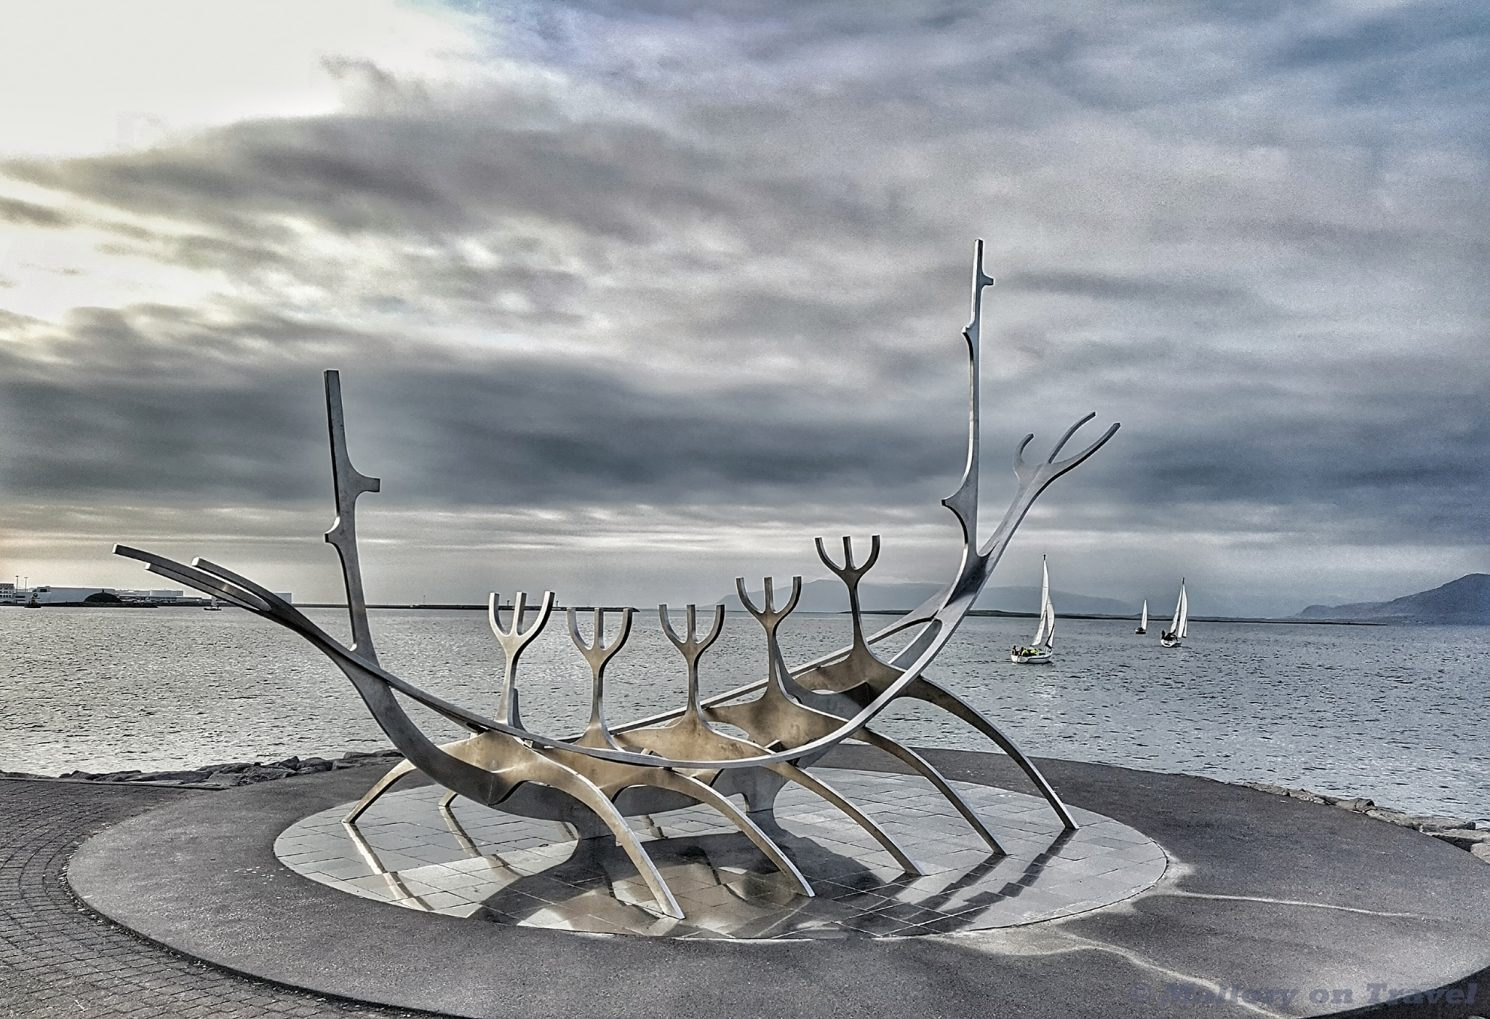 Lost Luggage Challenge; the Sun Voyager, viking ship sculpture in Reykjavik, the capital city of Iceland on Mallory on Travel adventure travel, photography, travel Iain Mallory_Iceland0071-01